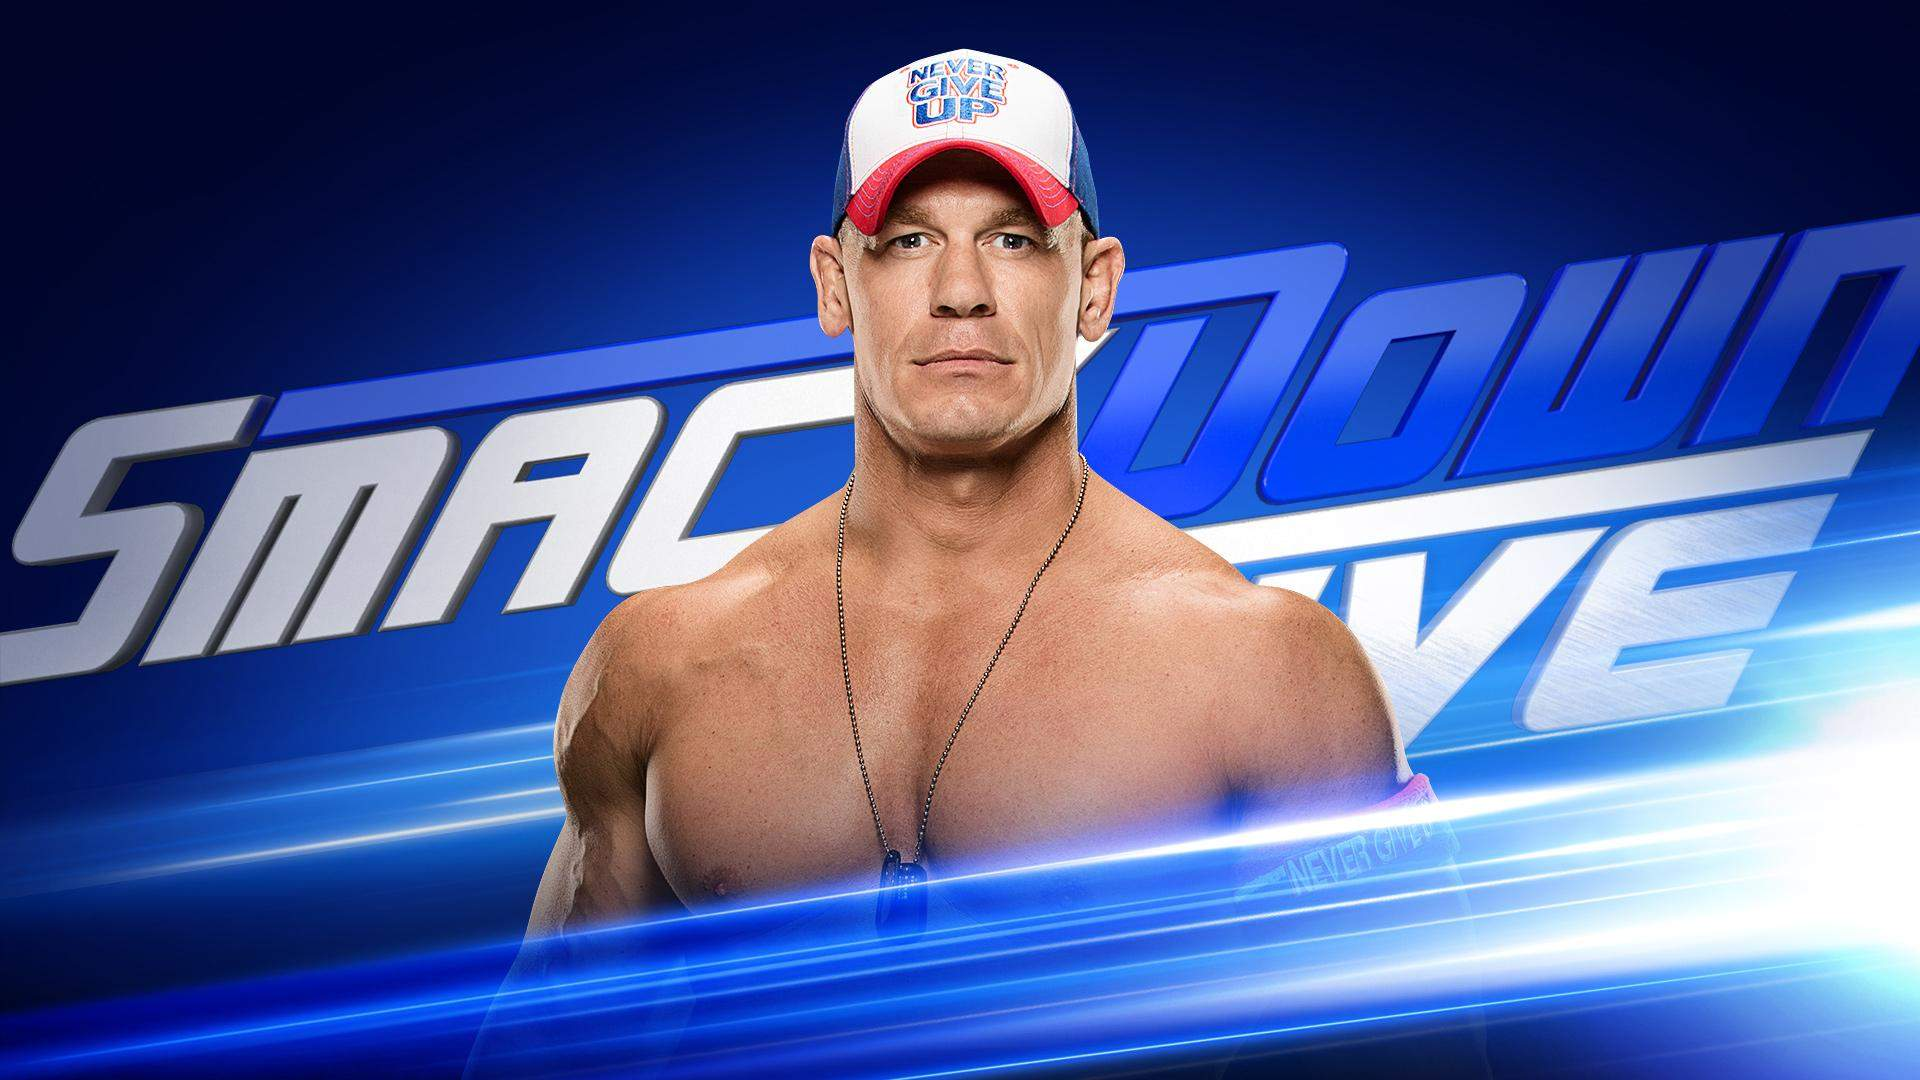 wonderful john cena smack down hd mobile desktop images free background